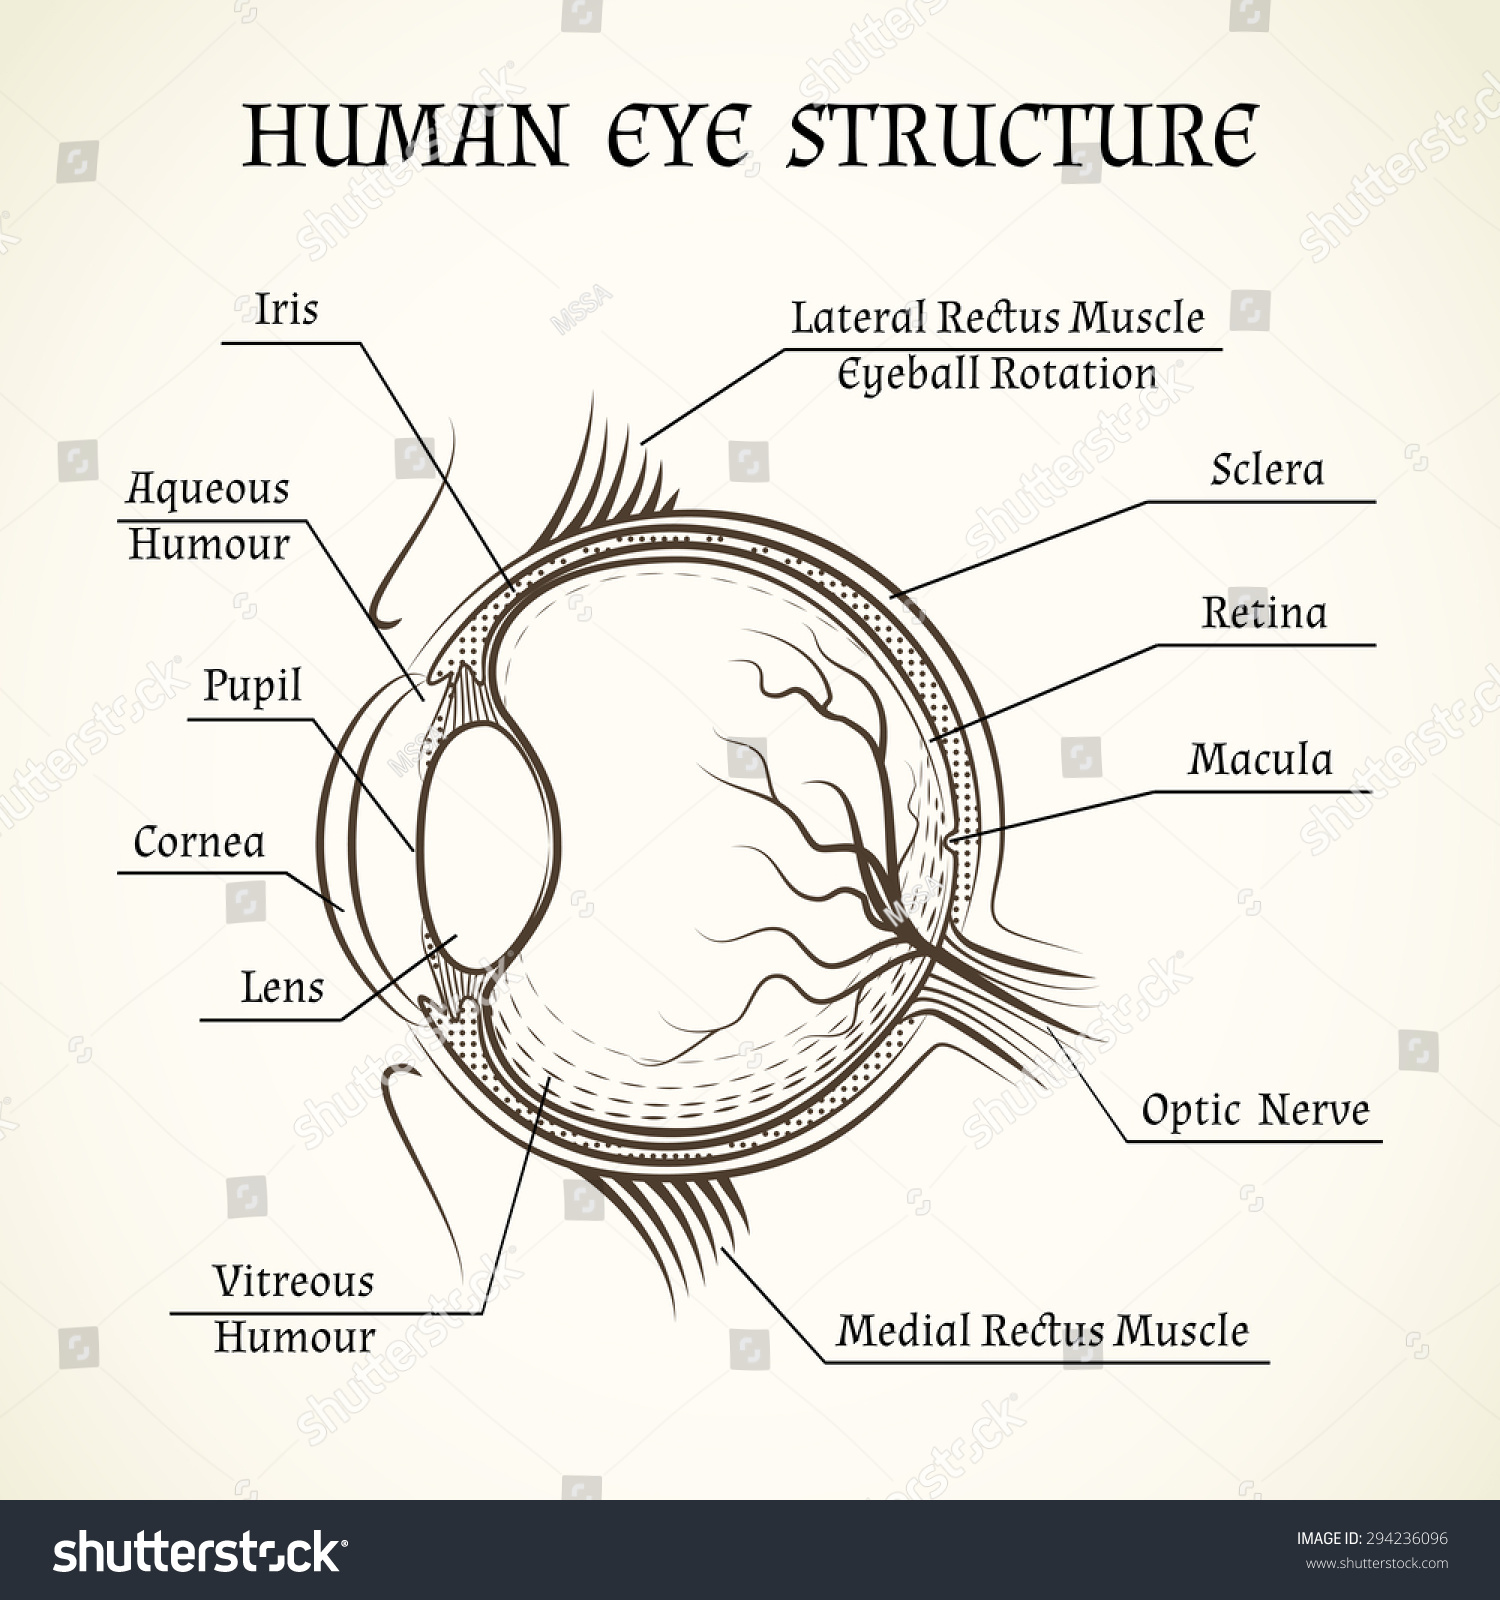 Structure Human Eye Anatomy Medicine Iris Stock Illustration ...